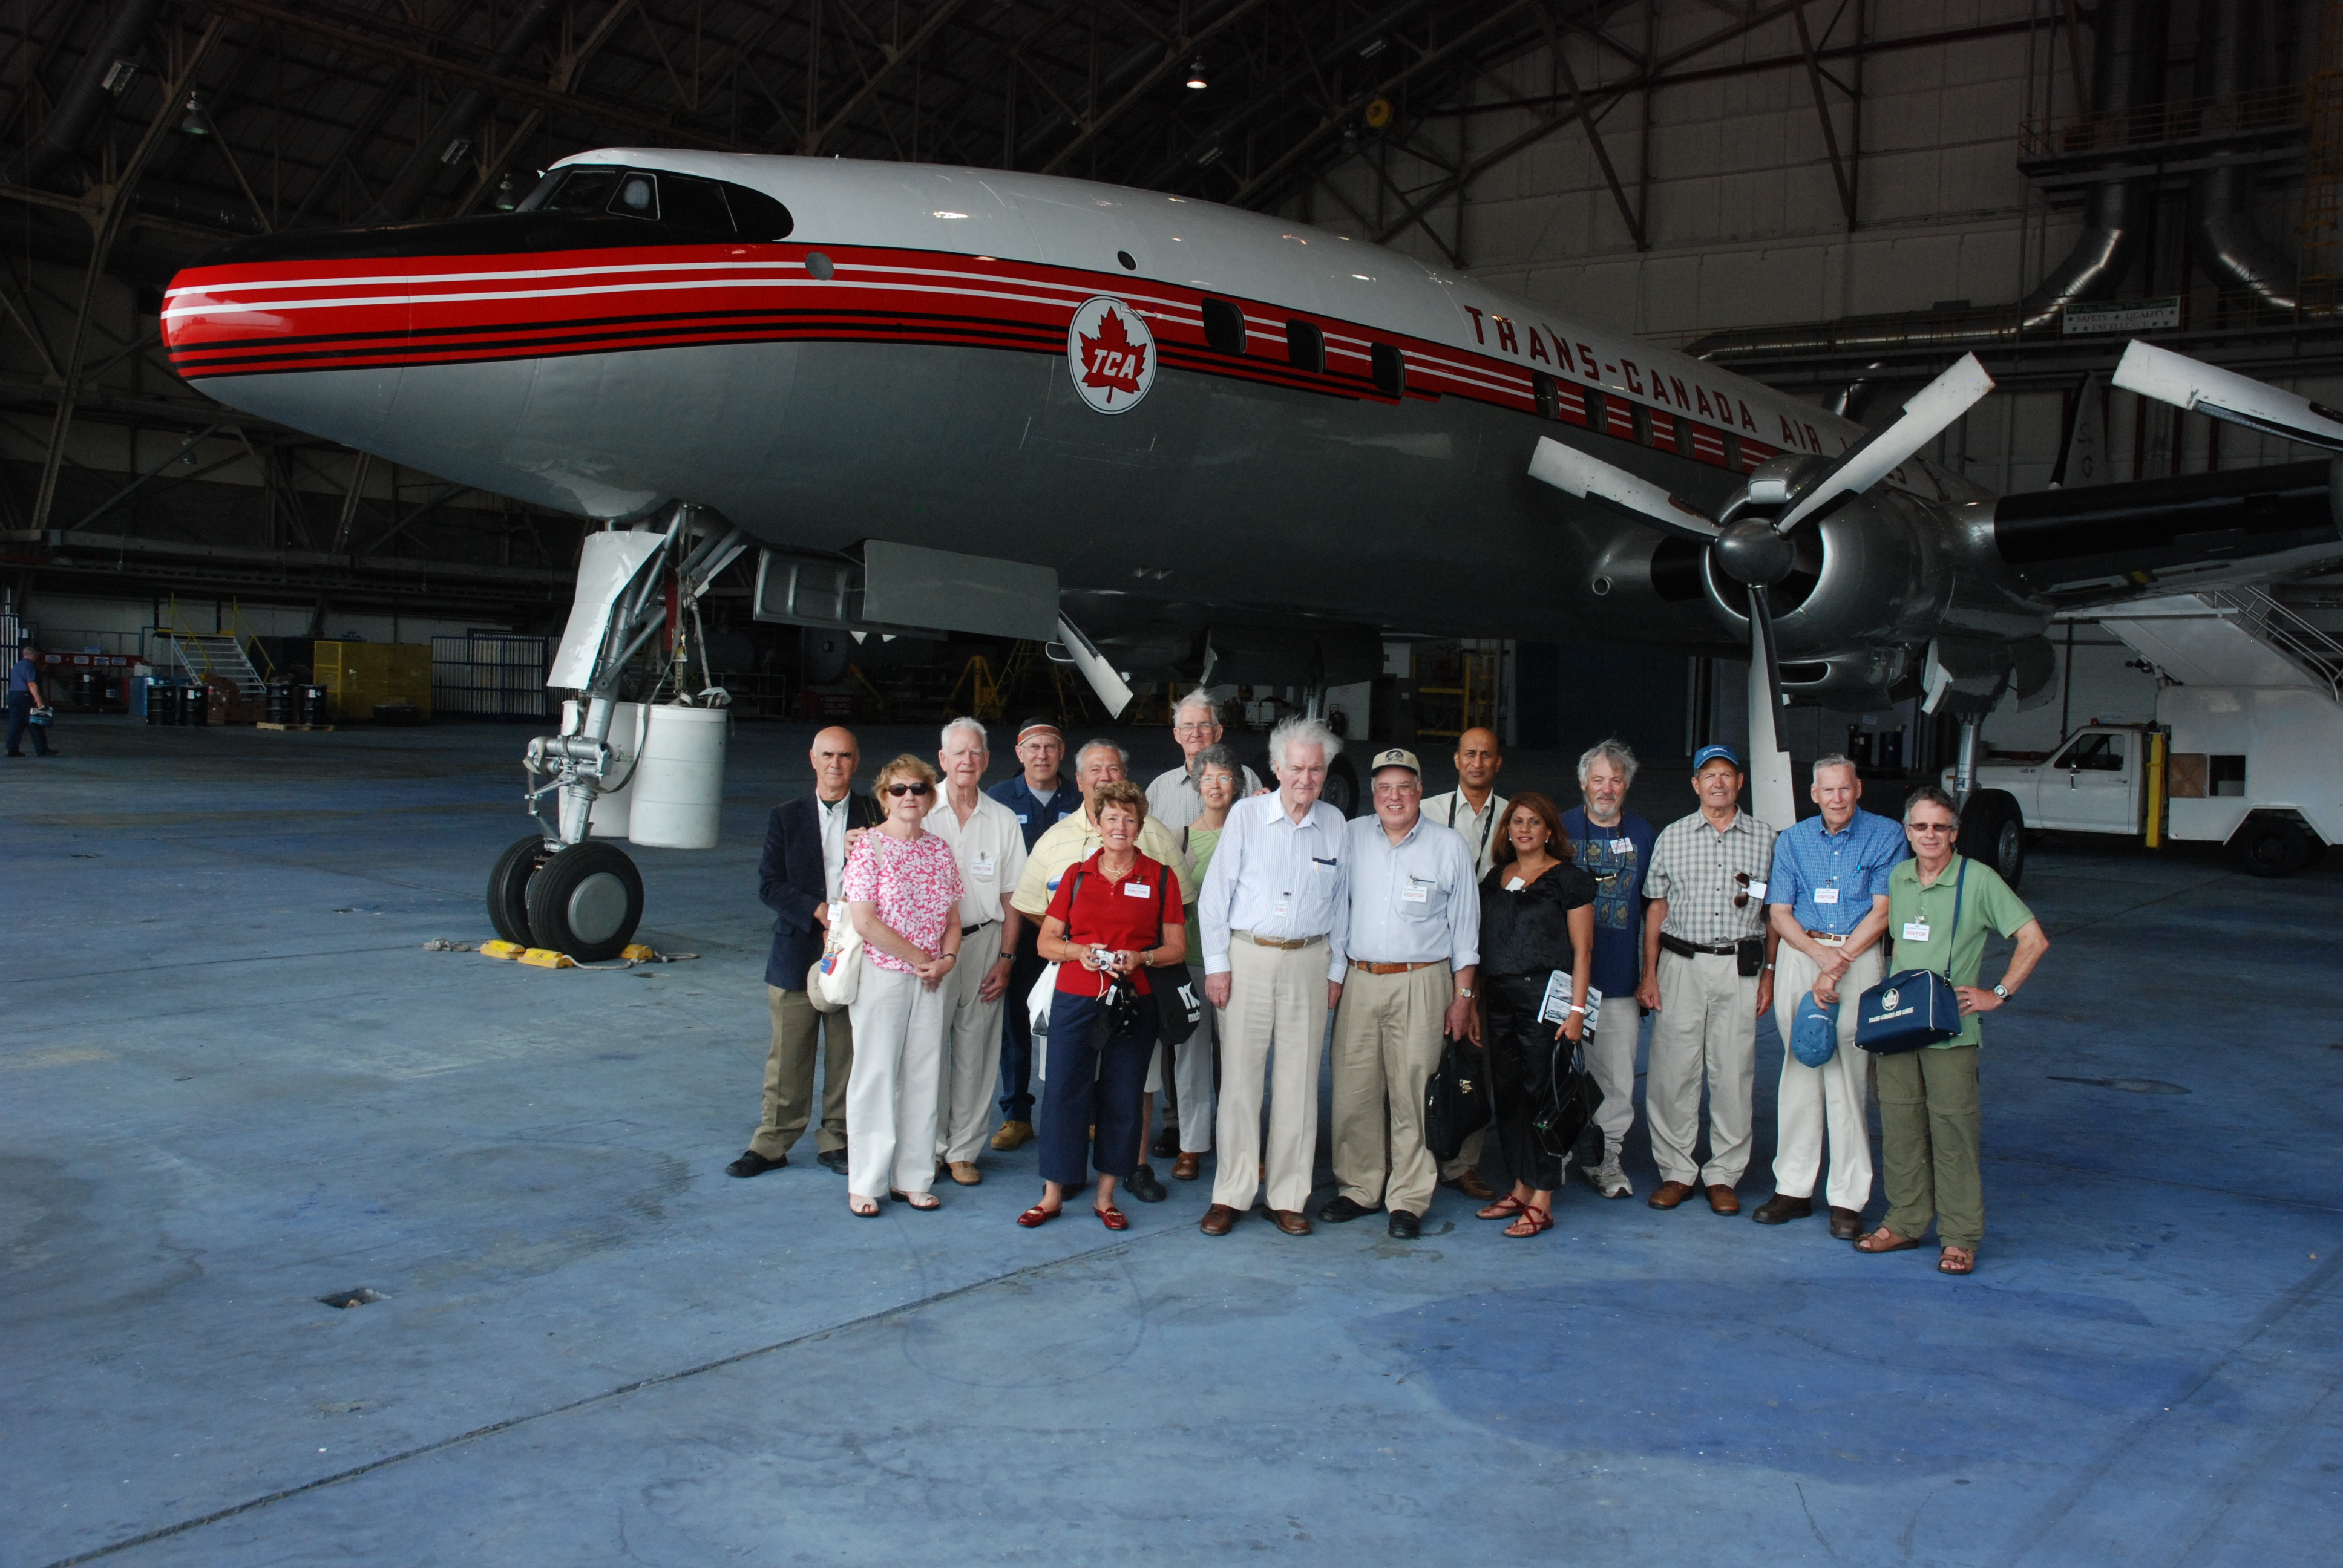 The Bogash-Lacey tour group with CF-TGE: Larry Milberry, Shirley & Don Cameron, Kevin Lacey, Jim & Lorna Dawes, Homer & Mary Lou Campbell, Paddy Szrajer, Bob Bogash, Jack & Lila Deonaraine, Clint Ward, Jay Fancott, Dave Robertson and Ron Rhodes. (Ken Swartz)